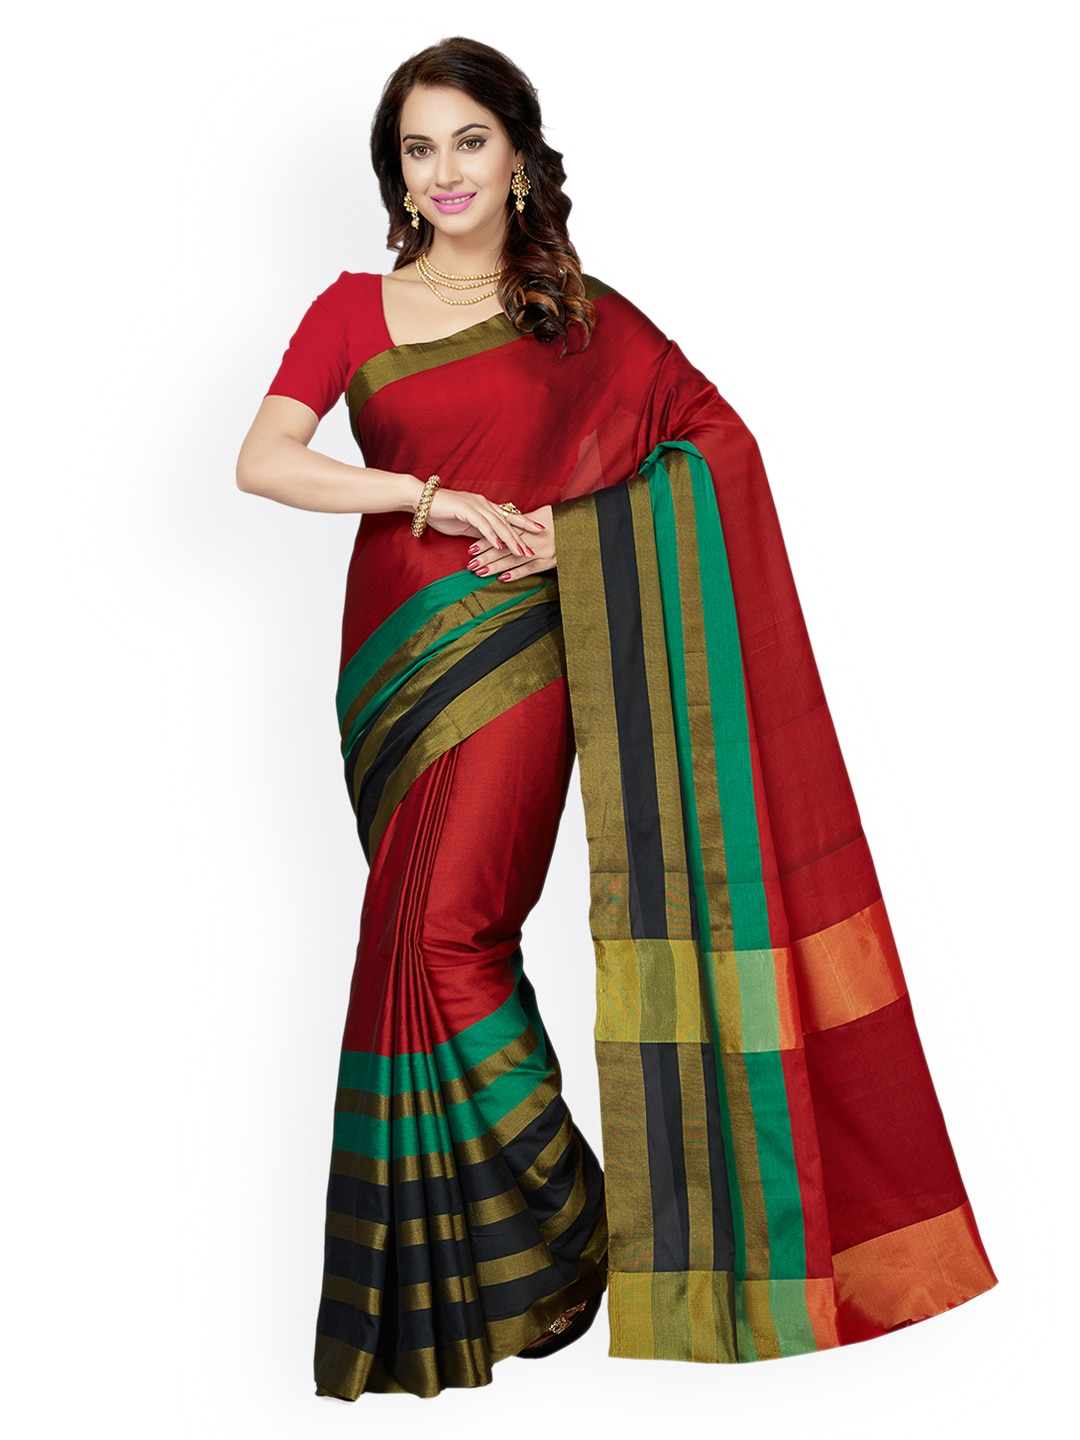 61230745e1a Saree - Buy Sarees Online at Best Price in India